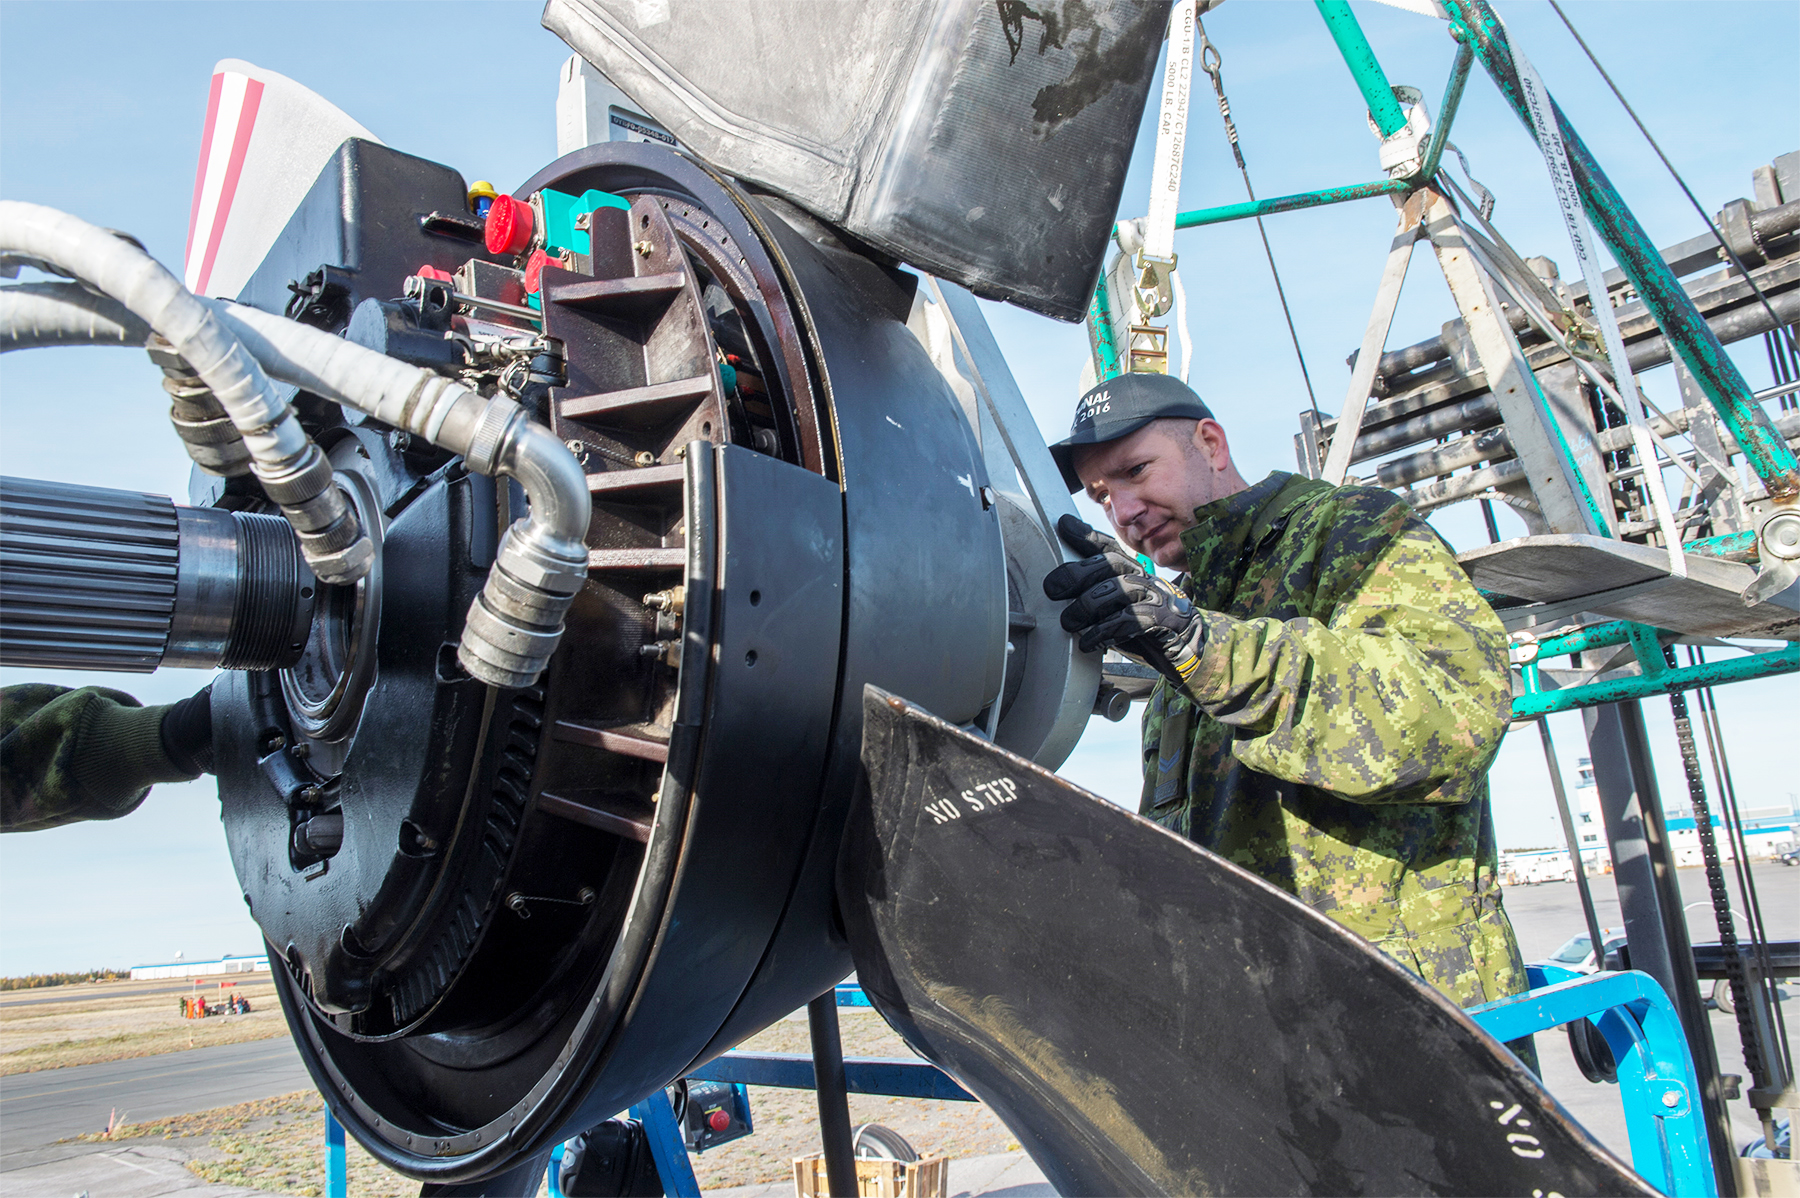 Corporal Dan Roman, an avionics technician, performs repairs on a propeller of a CC-130 Hercules cargo airplane during the National Search and Rescue Exercise in Yellowknife, Northwest Territories, on September 21, 2016. PHOTO: Master Corporal Pat Blanchard, IS03-2016-0035-008